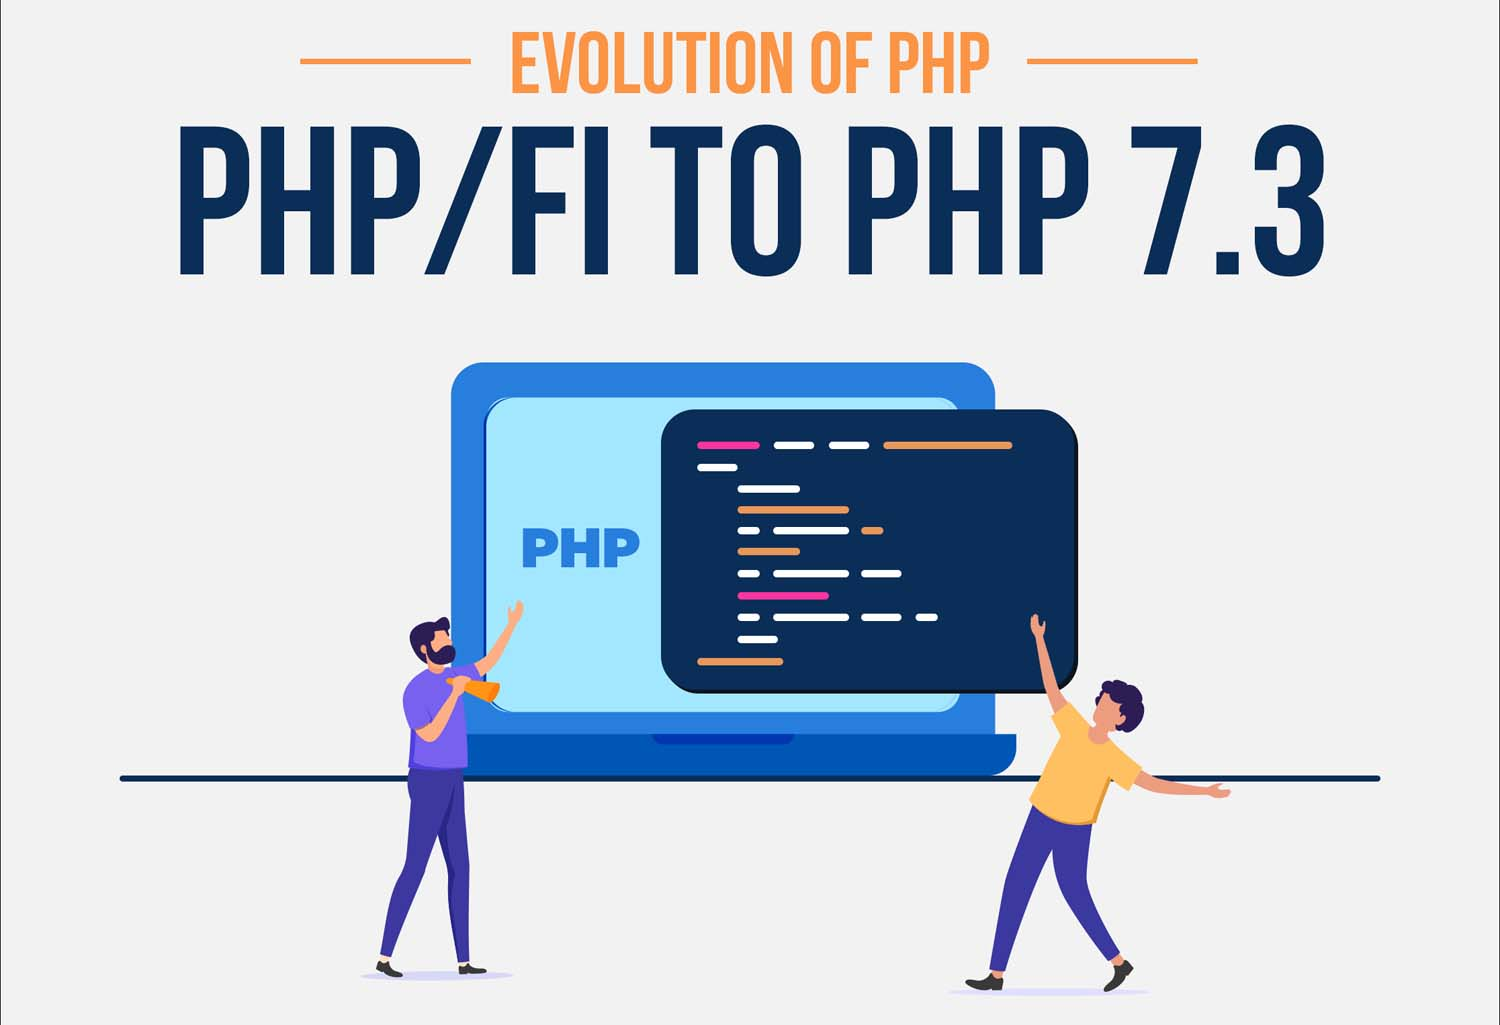 Evolution of PHP – PHP/F1 to PHP 7.3